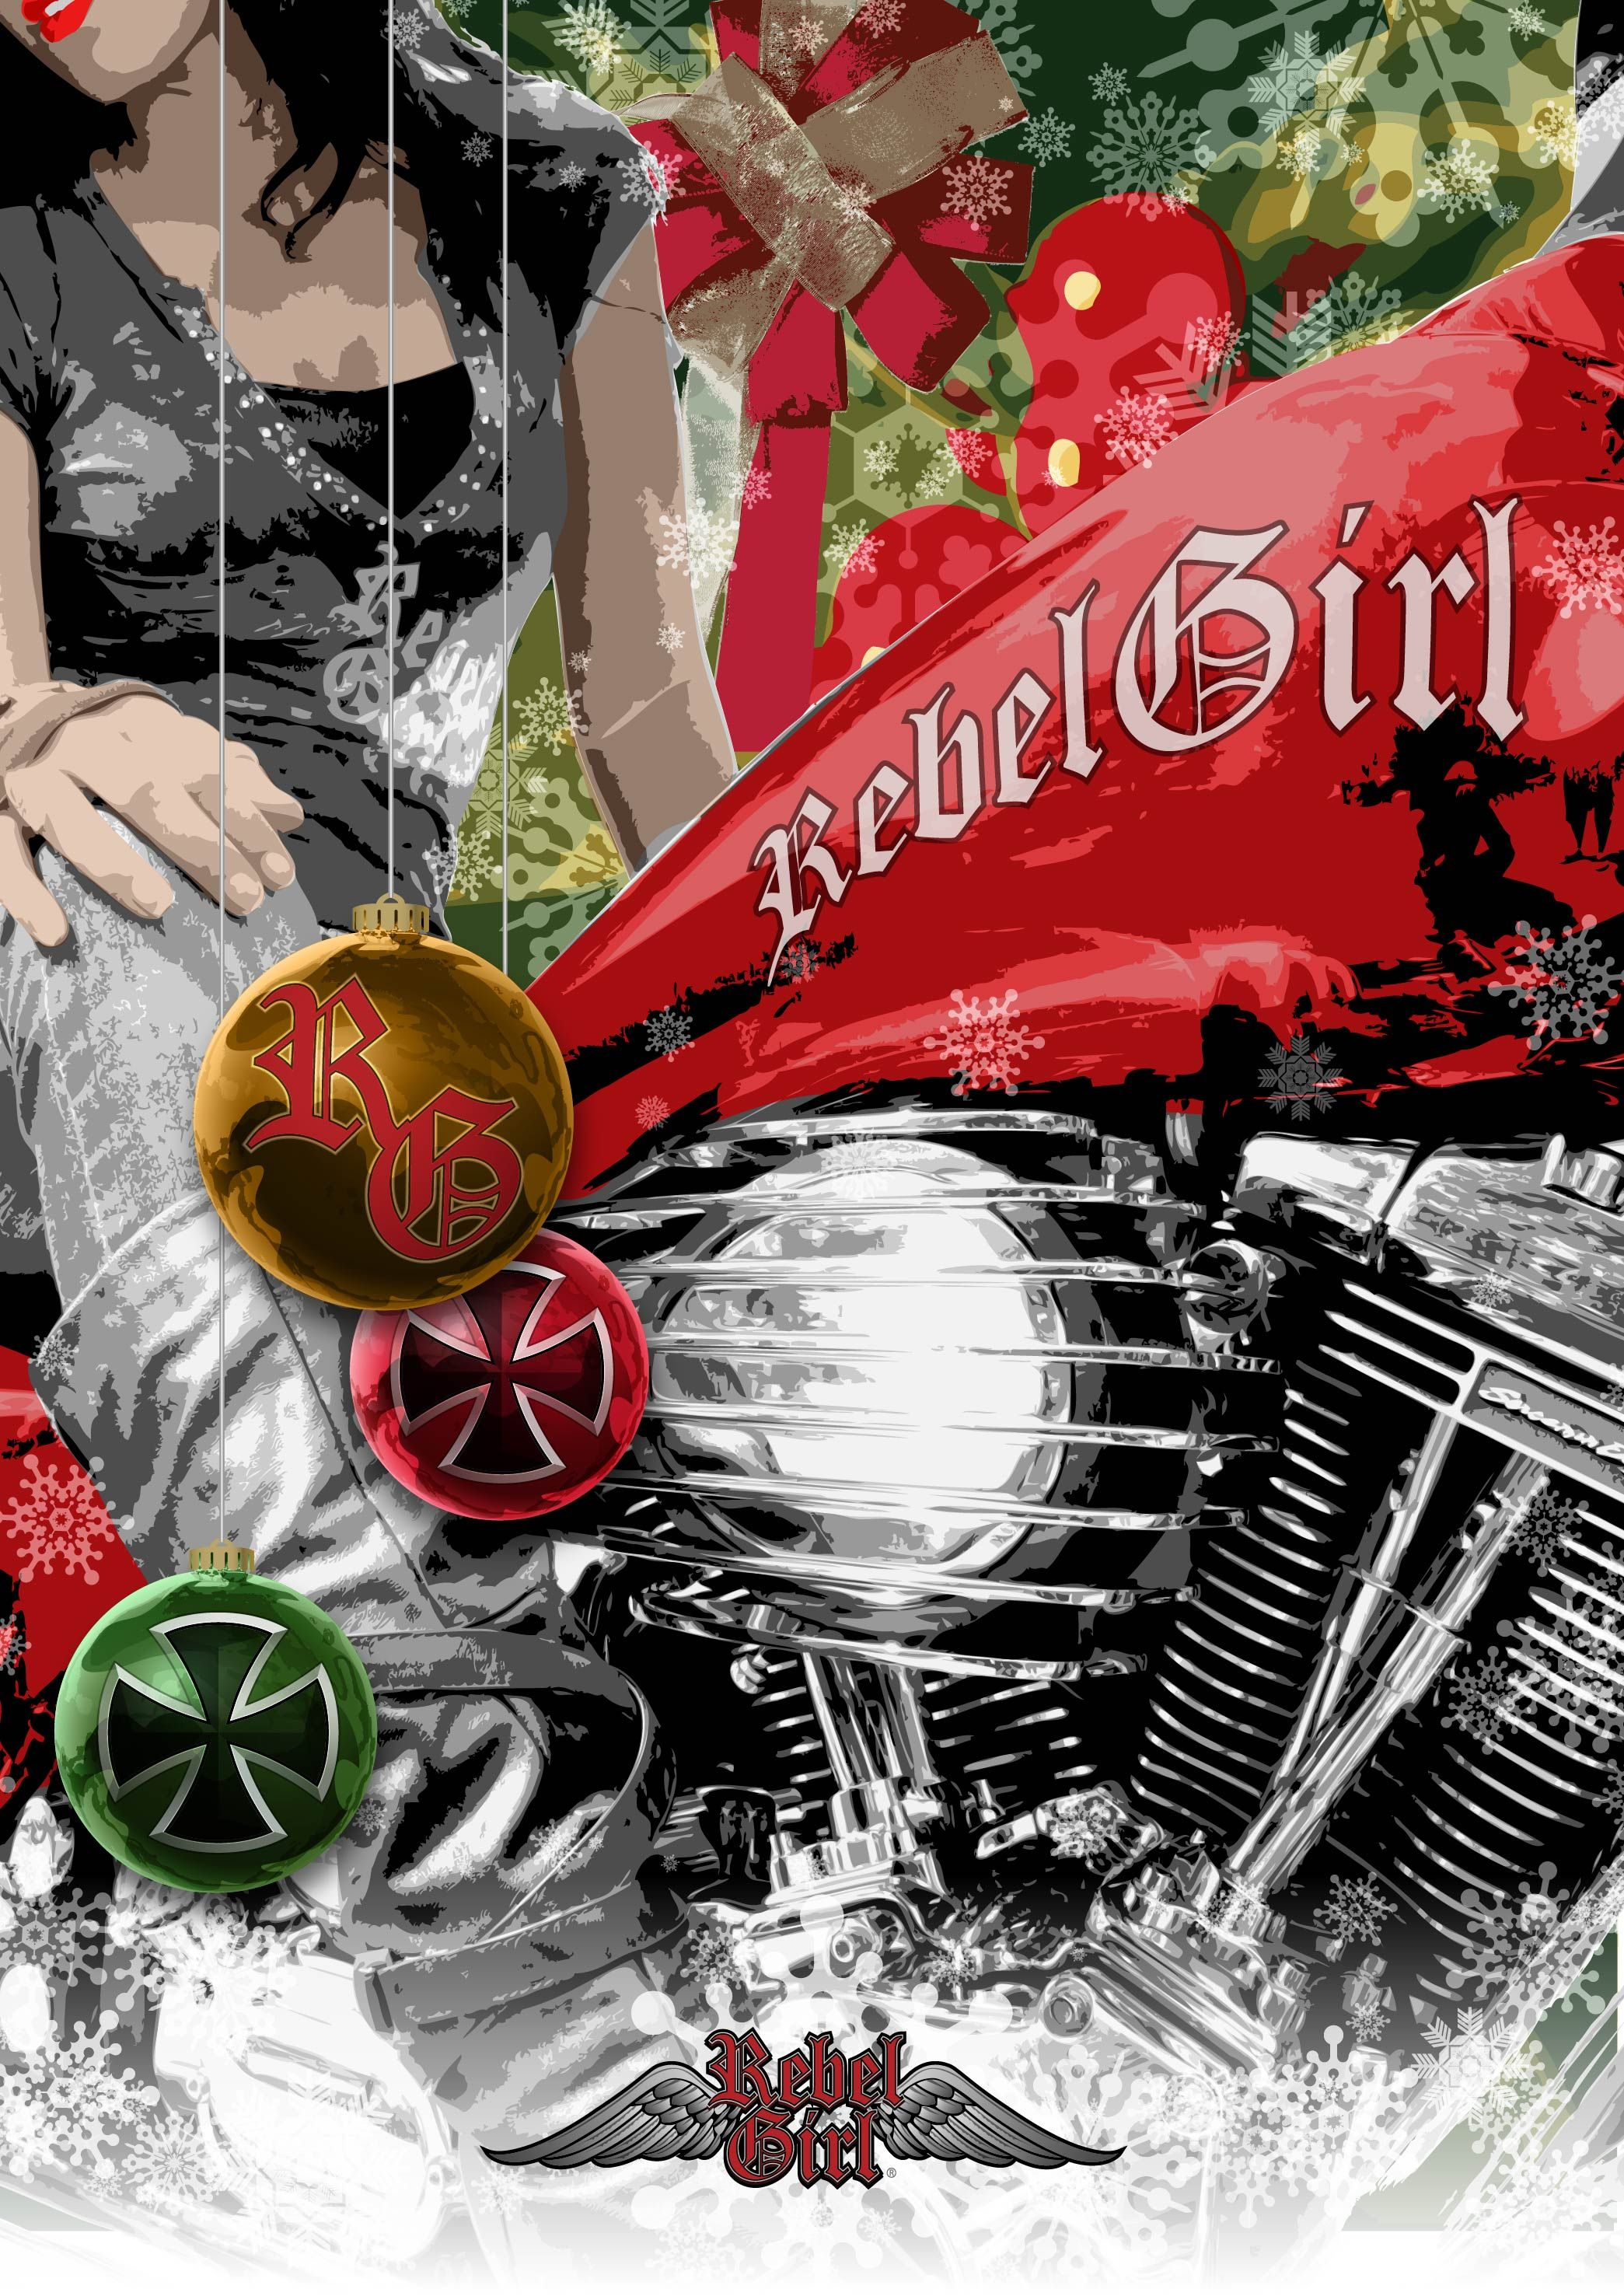 Christmas holiday motorcycle greetings rebelgirl christmas holiday motorcycle greetings rebelgirl kristyandbryce Image collections